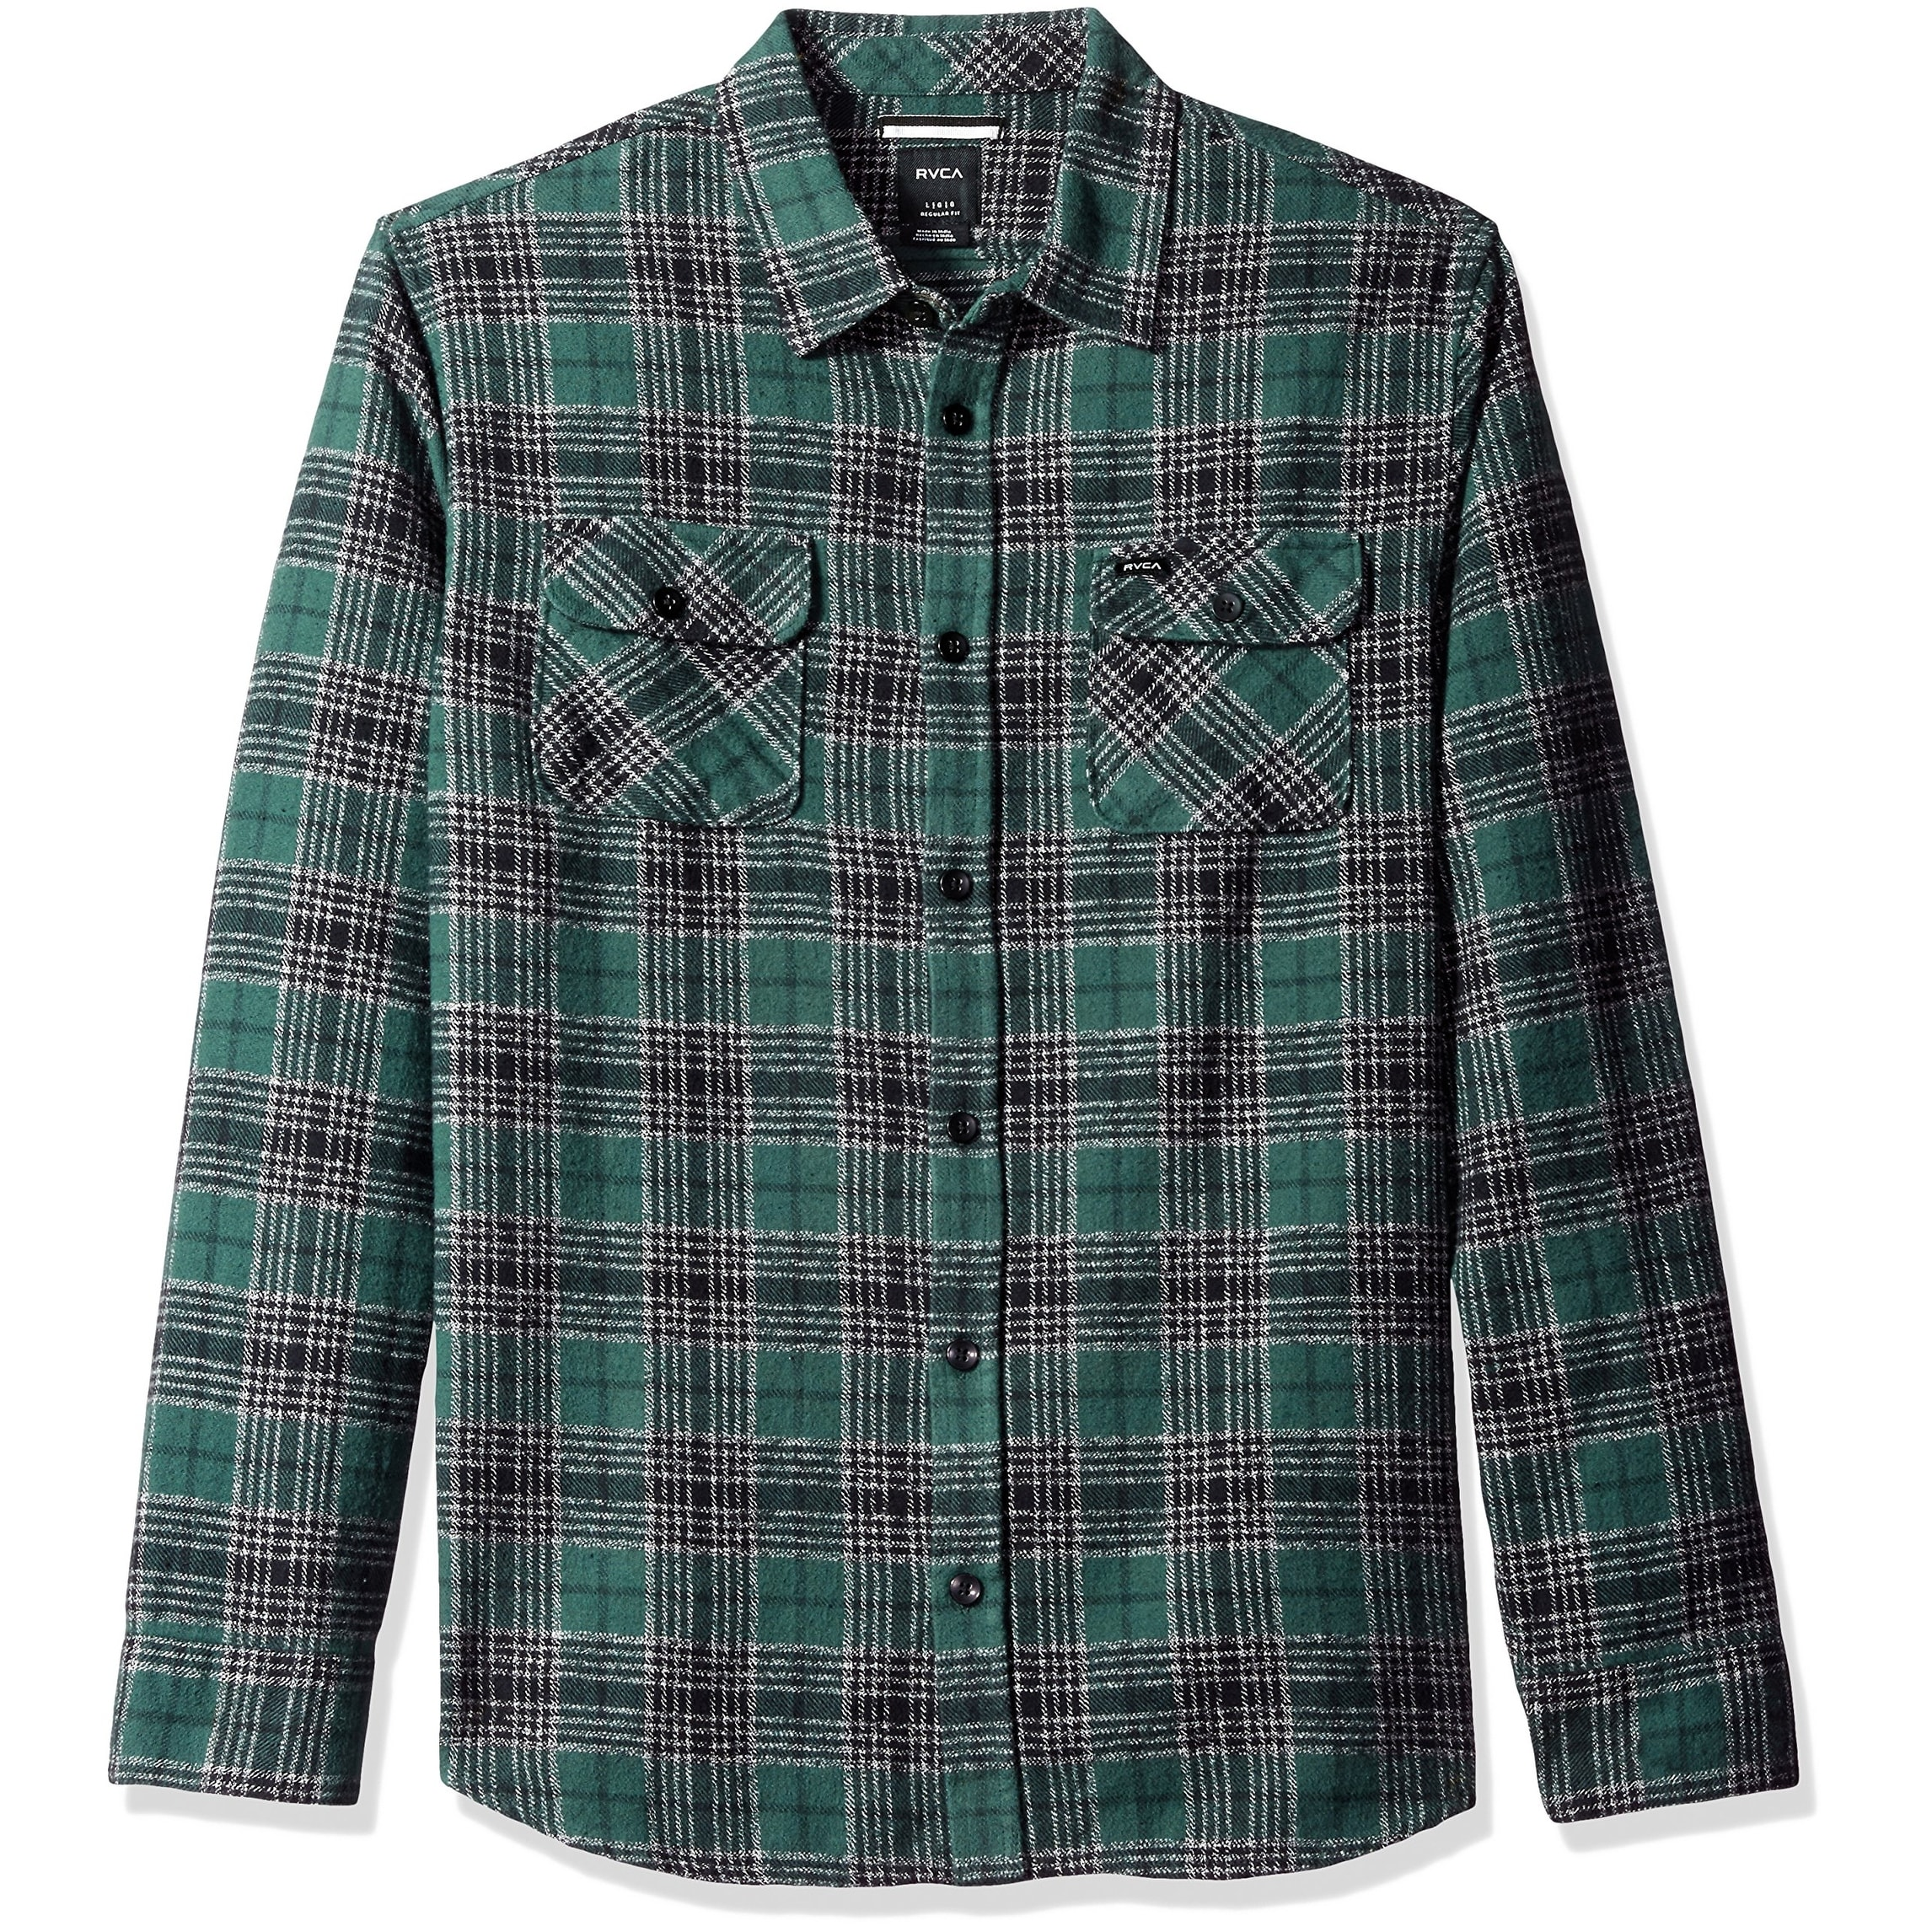 f726f4889a Shop RVCA NEW Green Mens Size Large L Button Down Plaid Lowland Shirt - Free  Shipping On Orders Over $45 - Overstock - 18756323